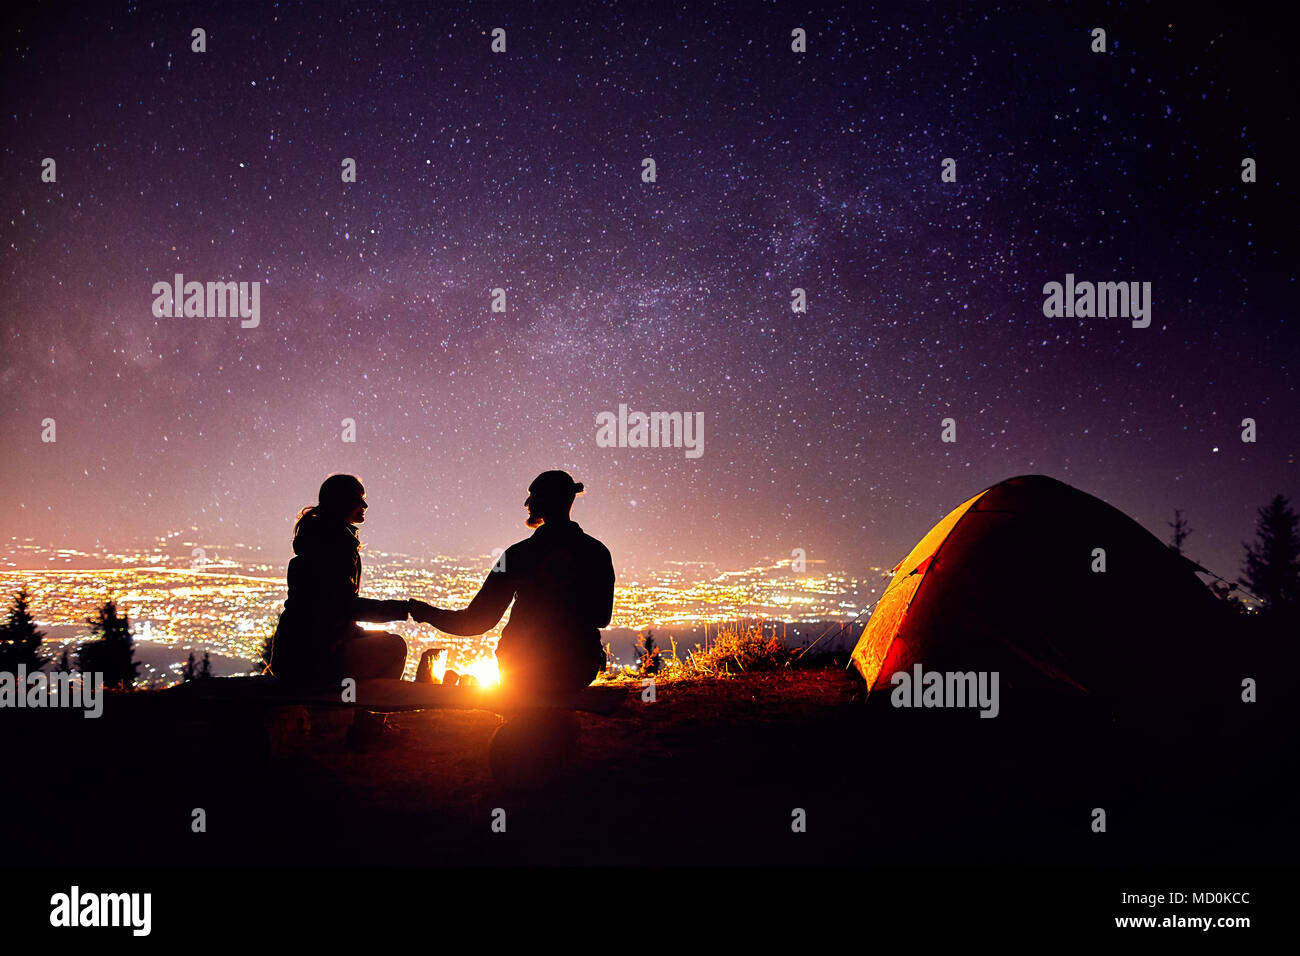 Happy couple in silhouette sitting near campfire and orange tent. Night sky with milky way stars and city lights at background. - Stock Image